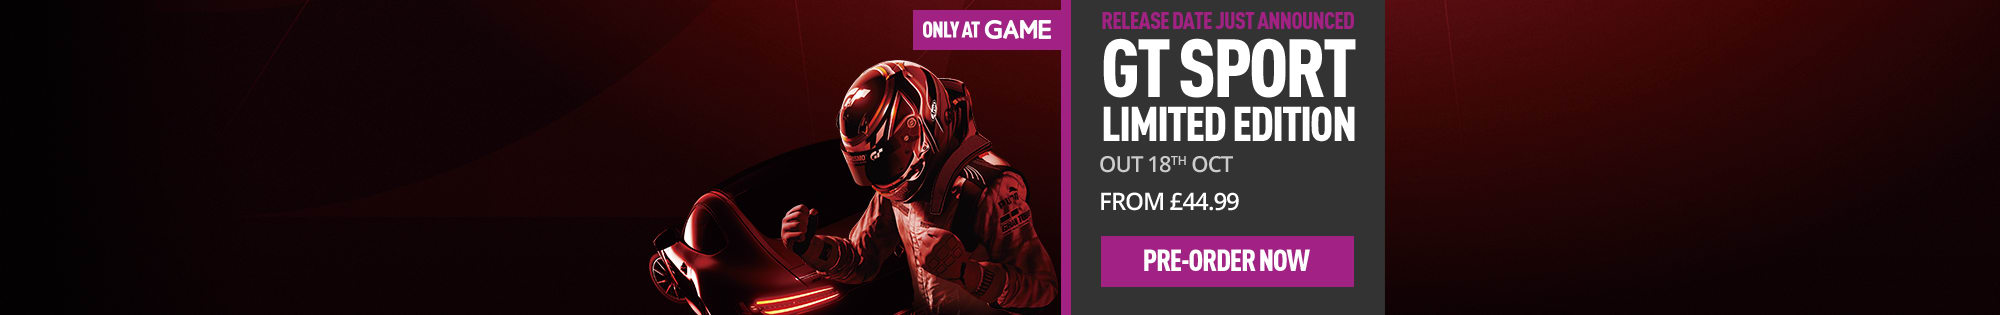 GT Sport - Pre-Order Now at GAME.co.uk